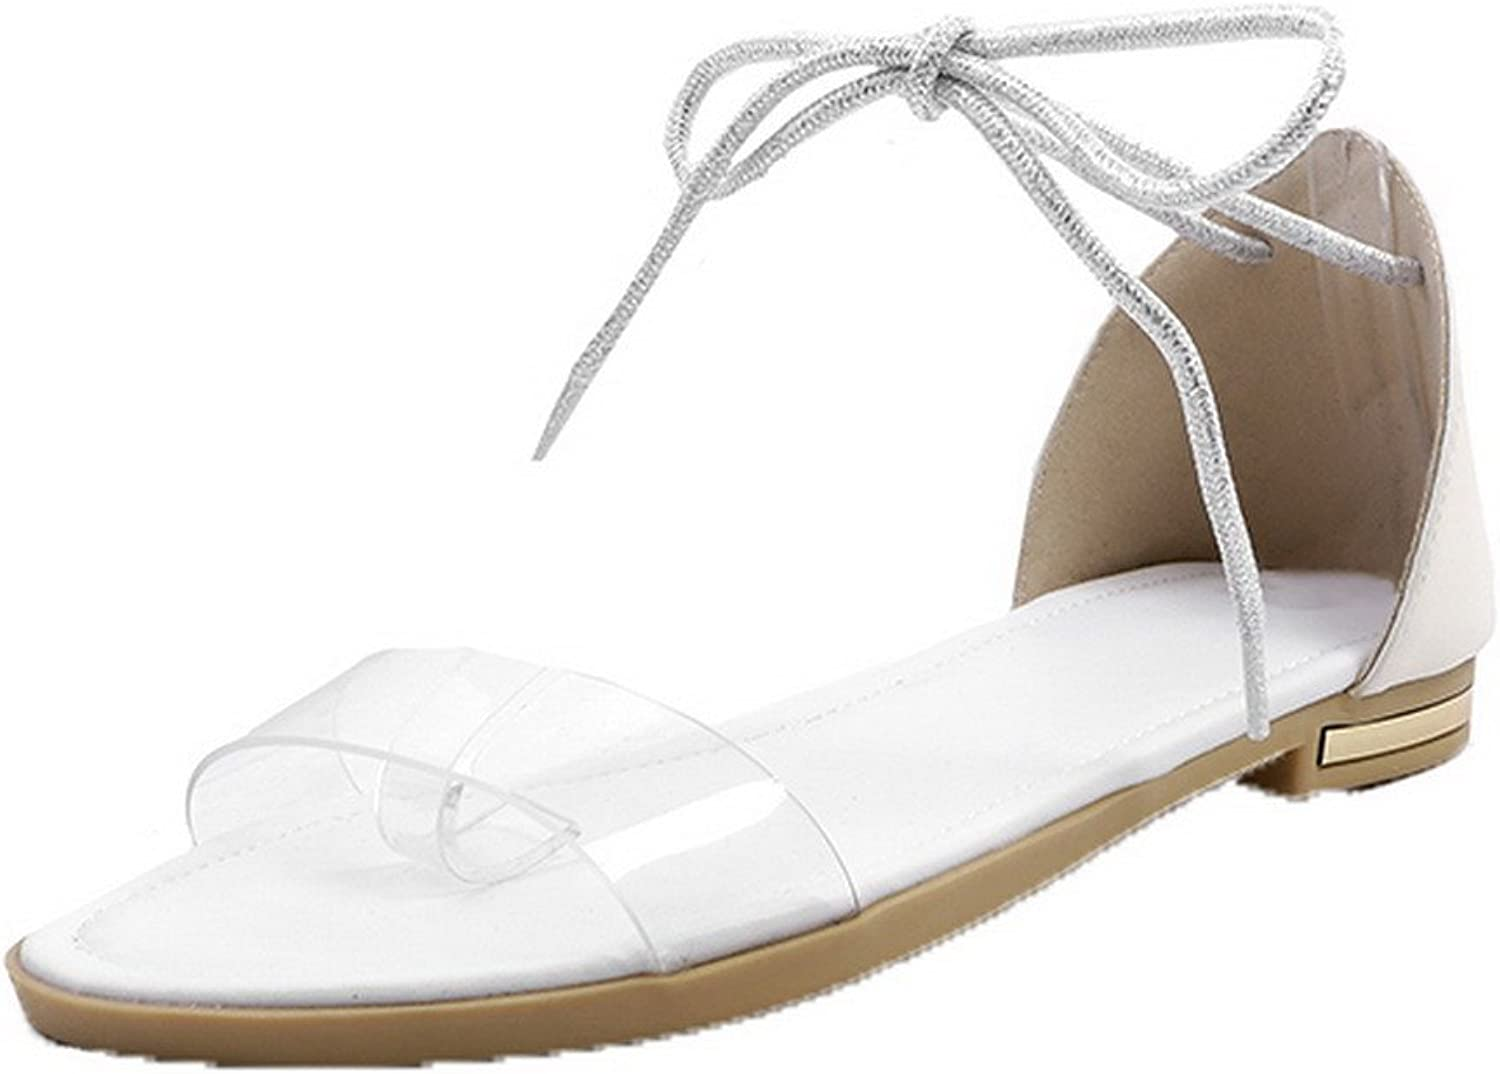 WeenFashion Women's Low-Heels Solid Lace-up Pu Open-Toe Sandals, AMGLW009747